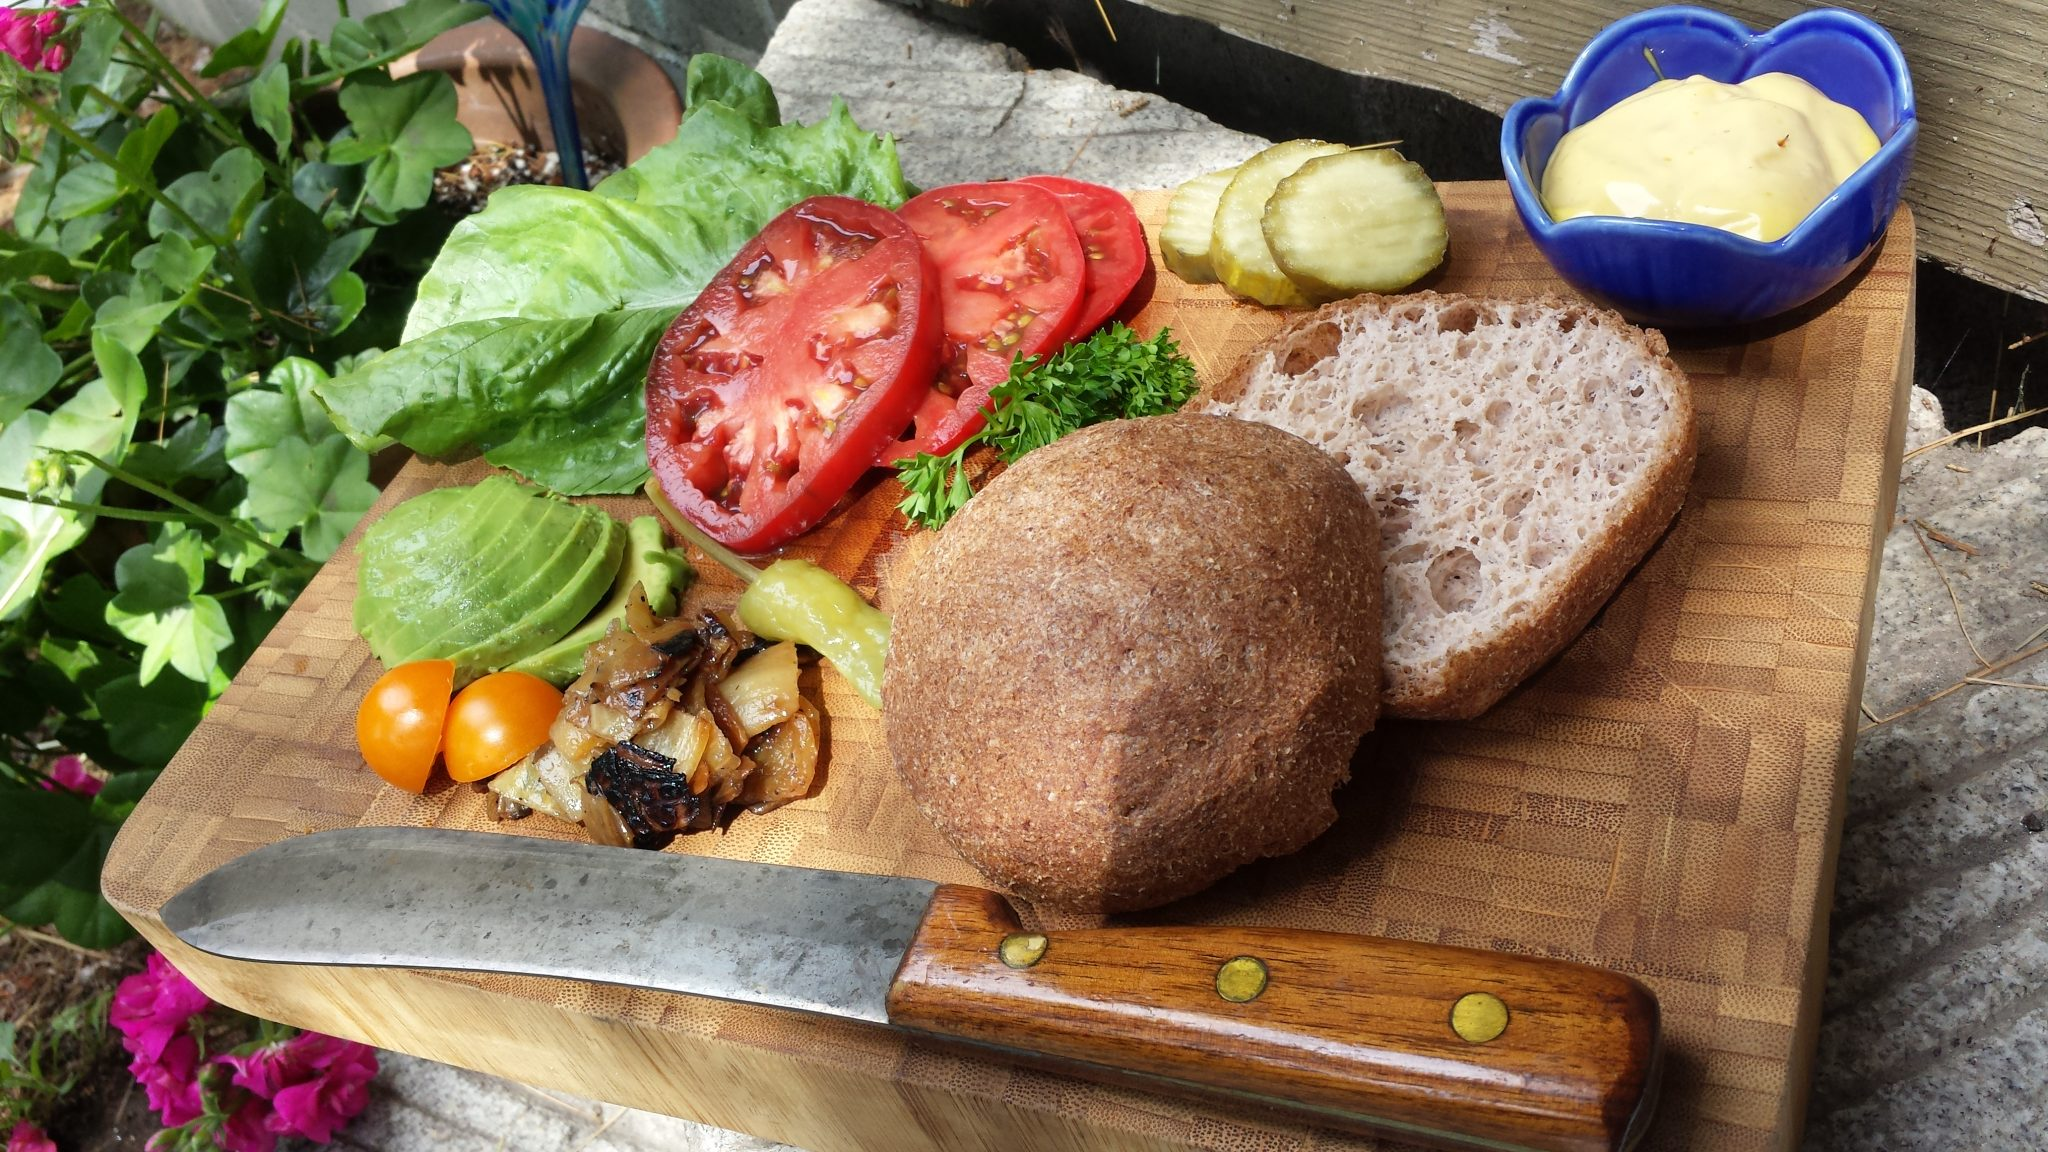 Get Out and Grill with Our Paleo-friendly Mayo Recipe and 15% Off Awesome Bunz